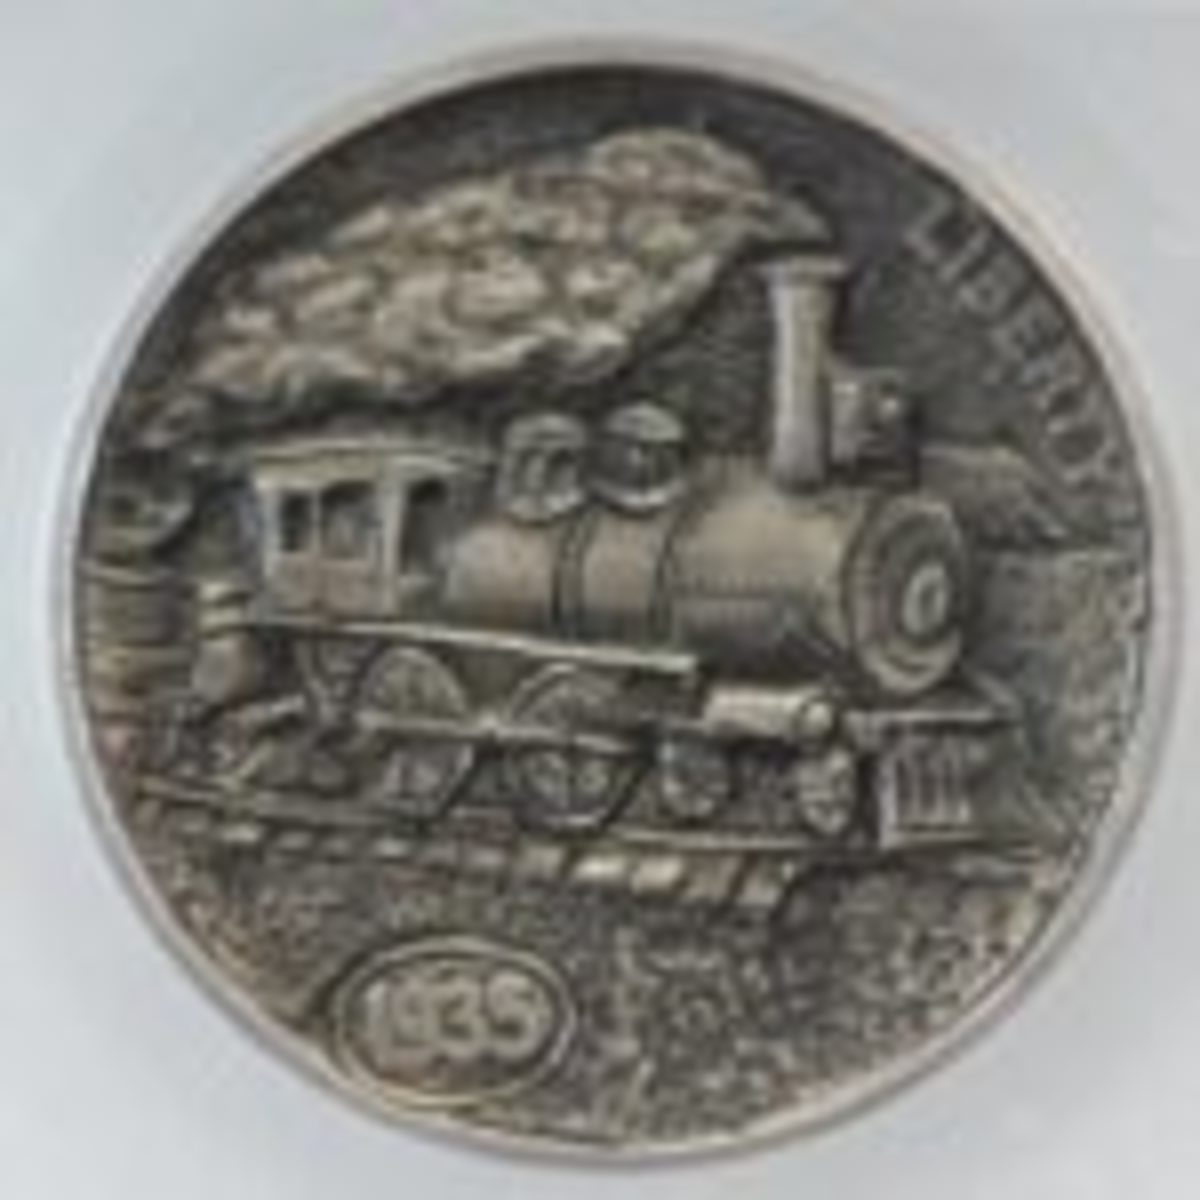 """Steam Locomotive"" by Robert Morris. Carved on obverse of this 1935 nickel. Offered at $400 on eBay."